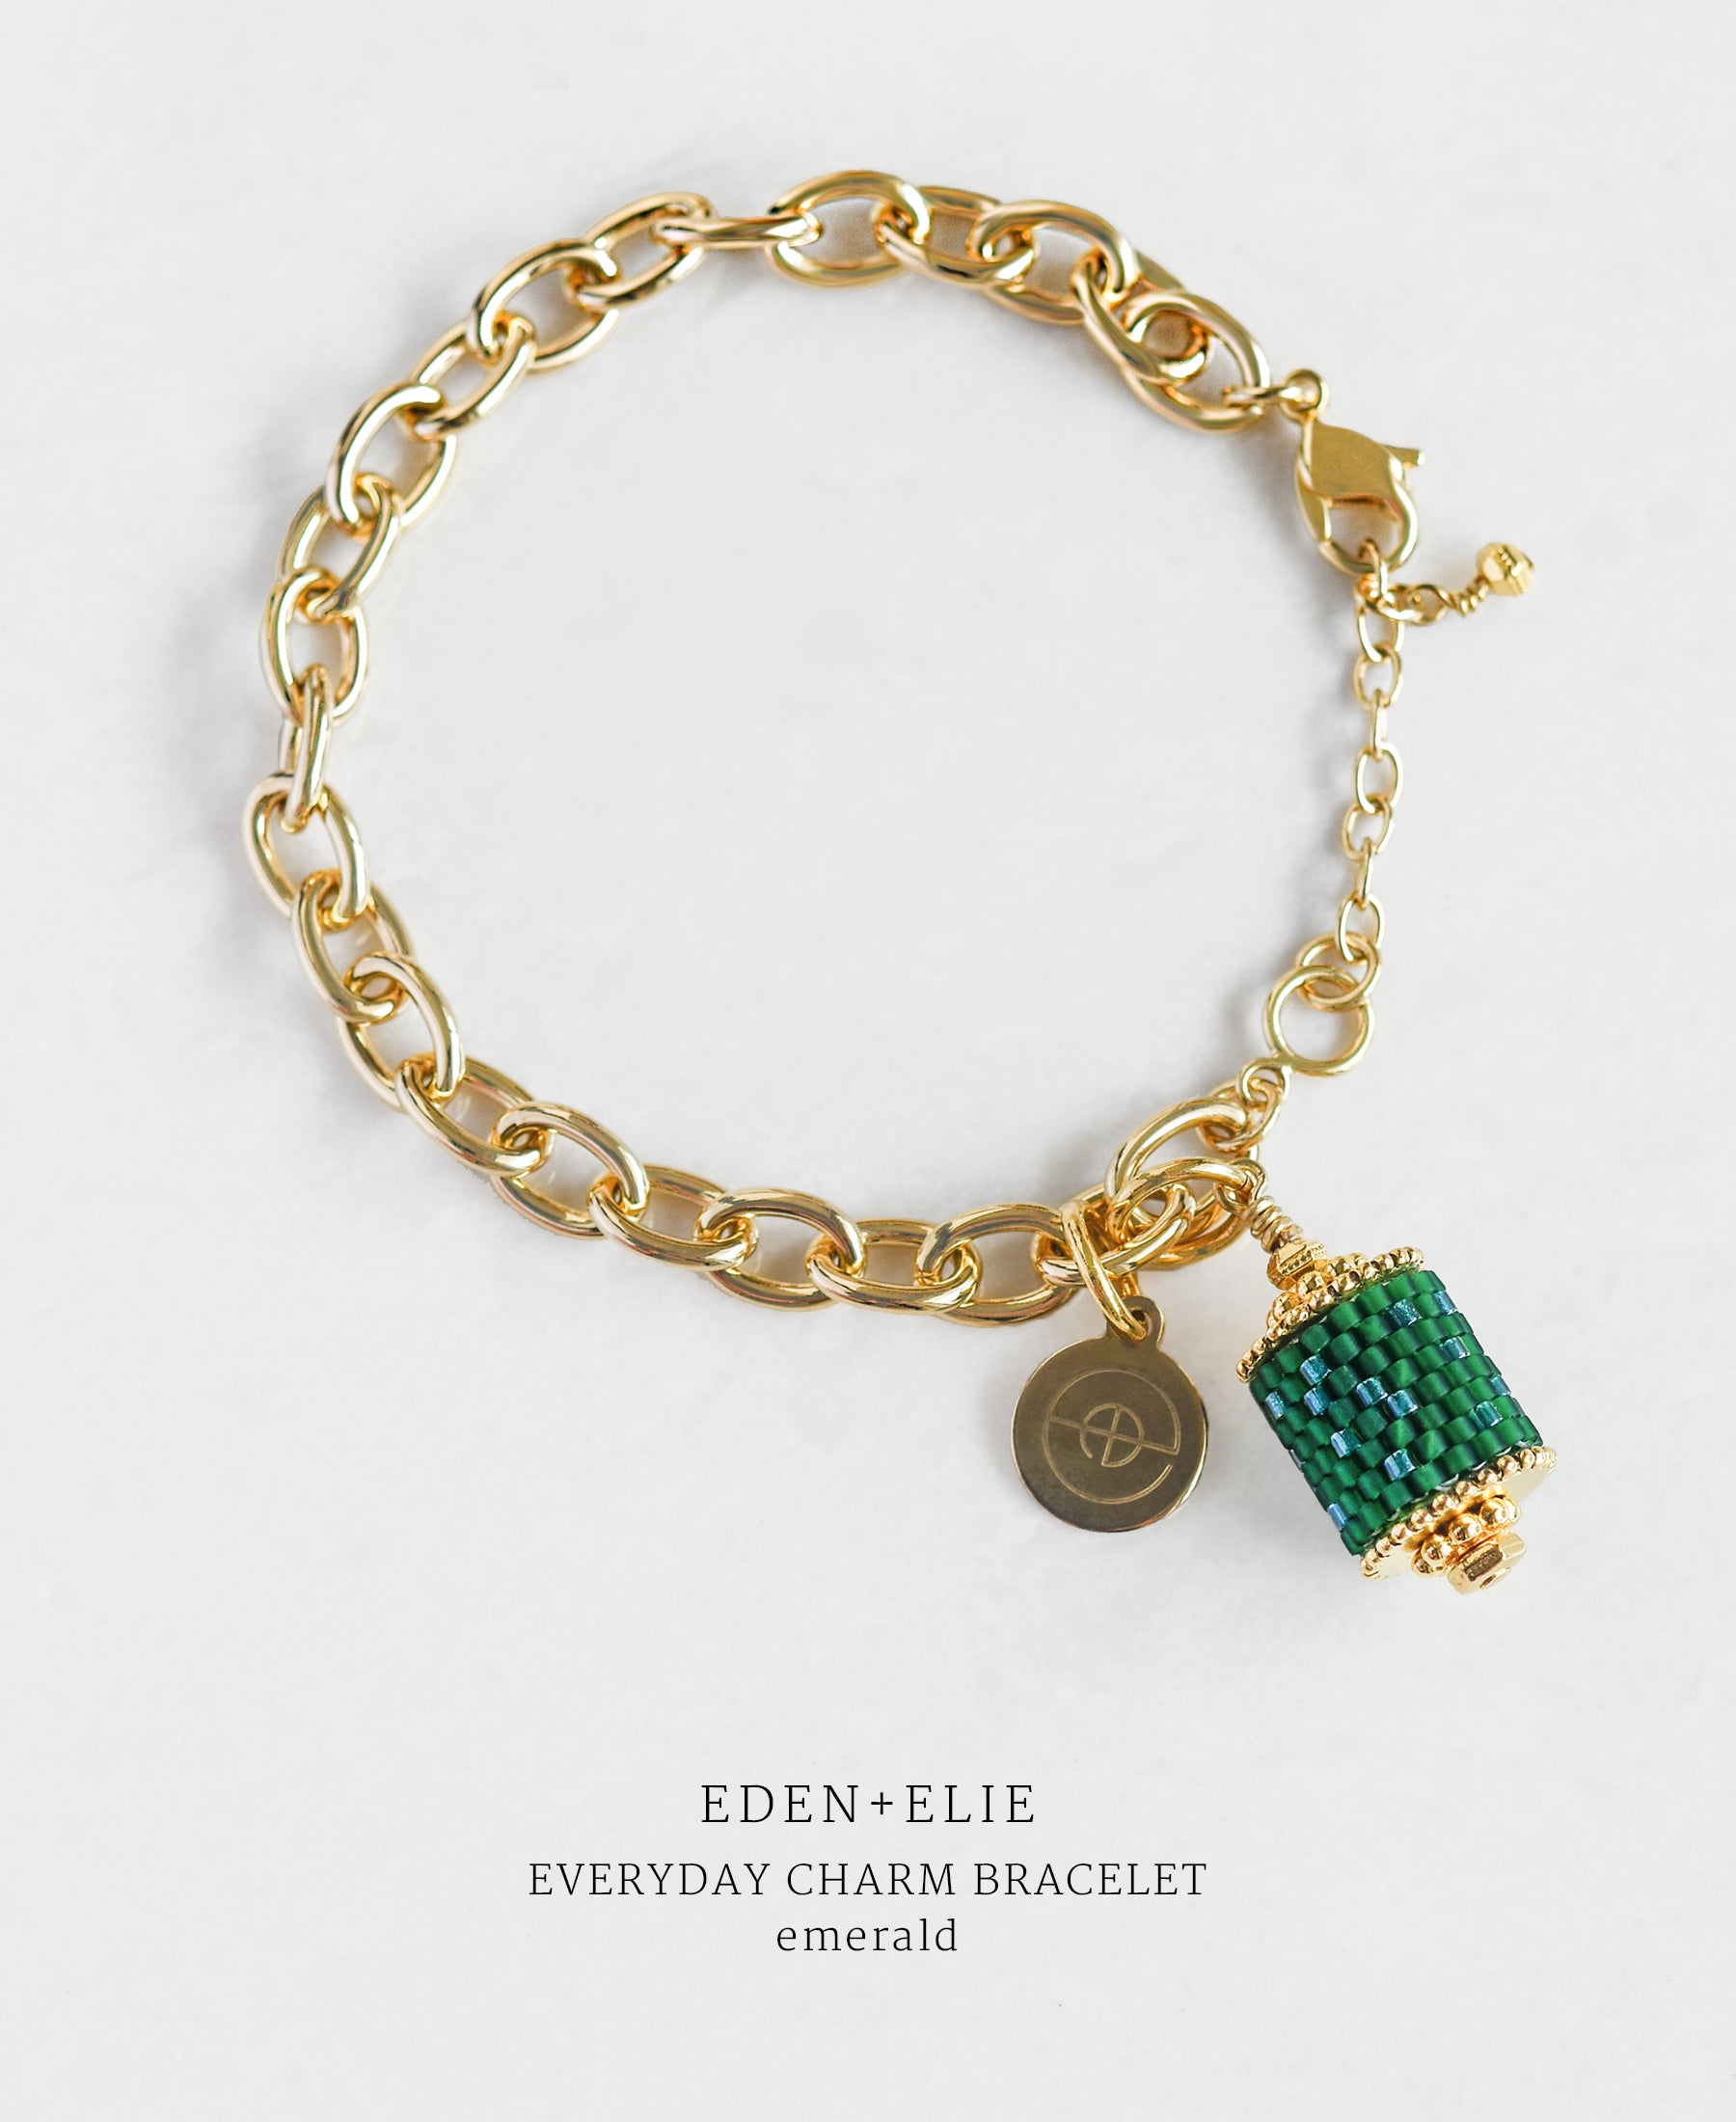 EDEN + ELIE Everyday gold charm bracelet - emerald green